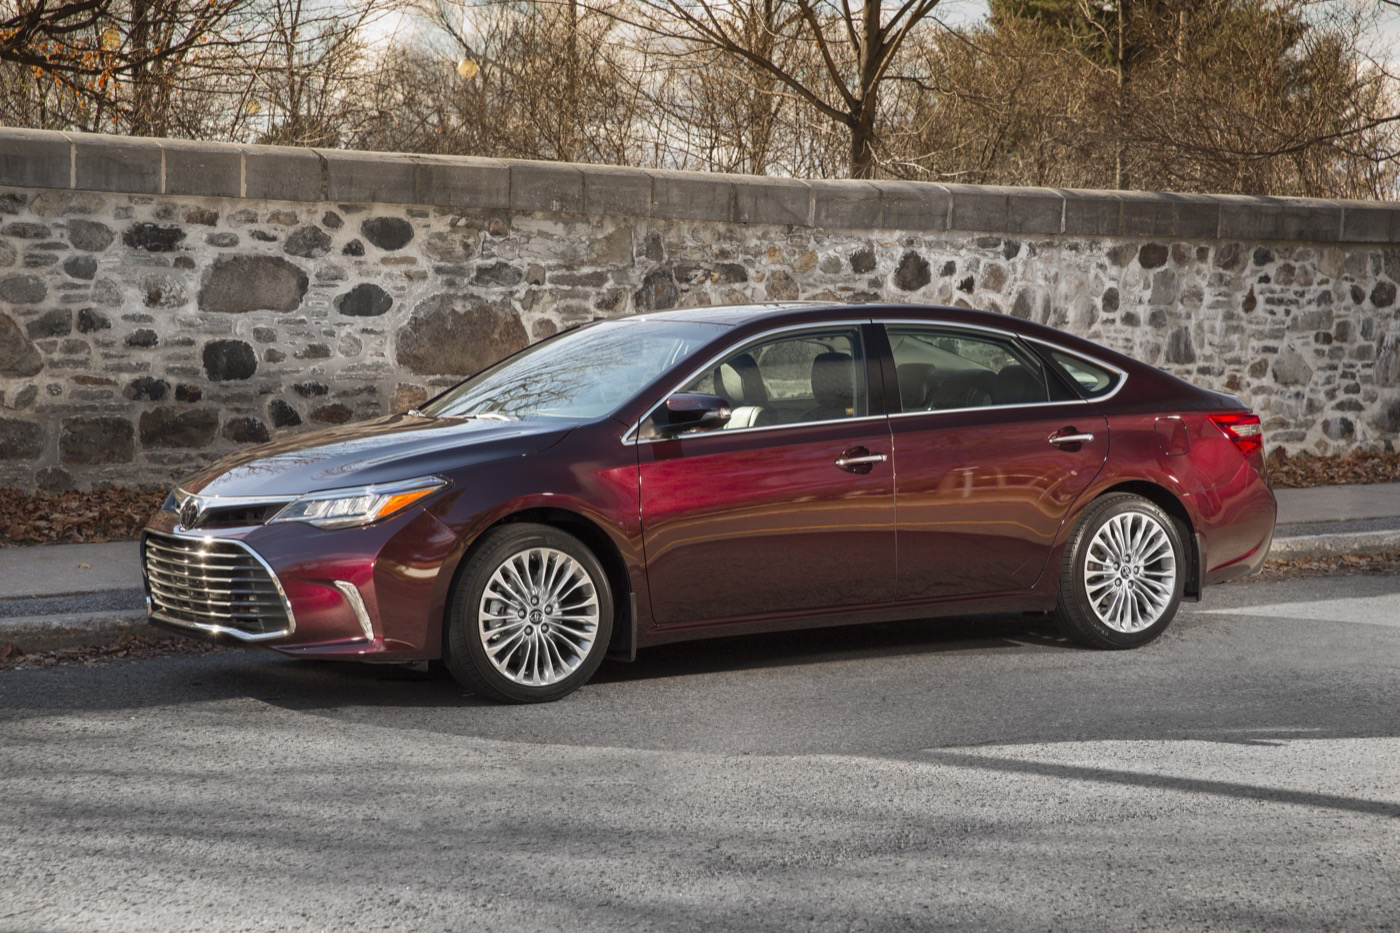 12 Best Luxury Midsize Cars For The Money In 2019: Fifth-Gen Toyota Avalon Due Next Year